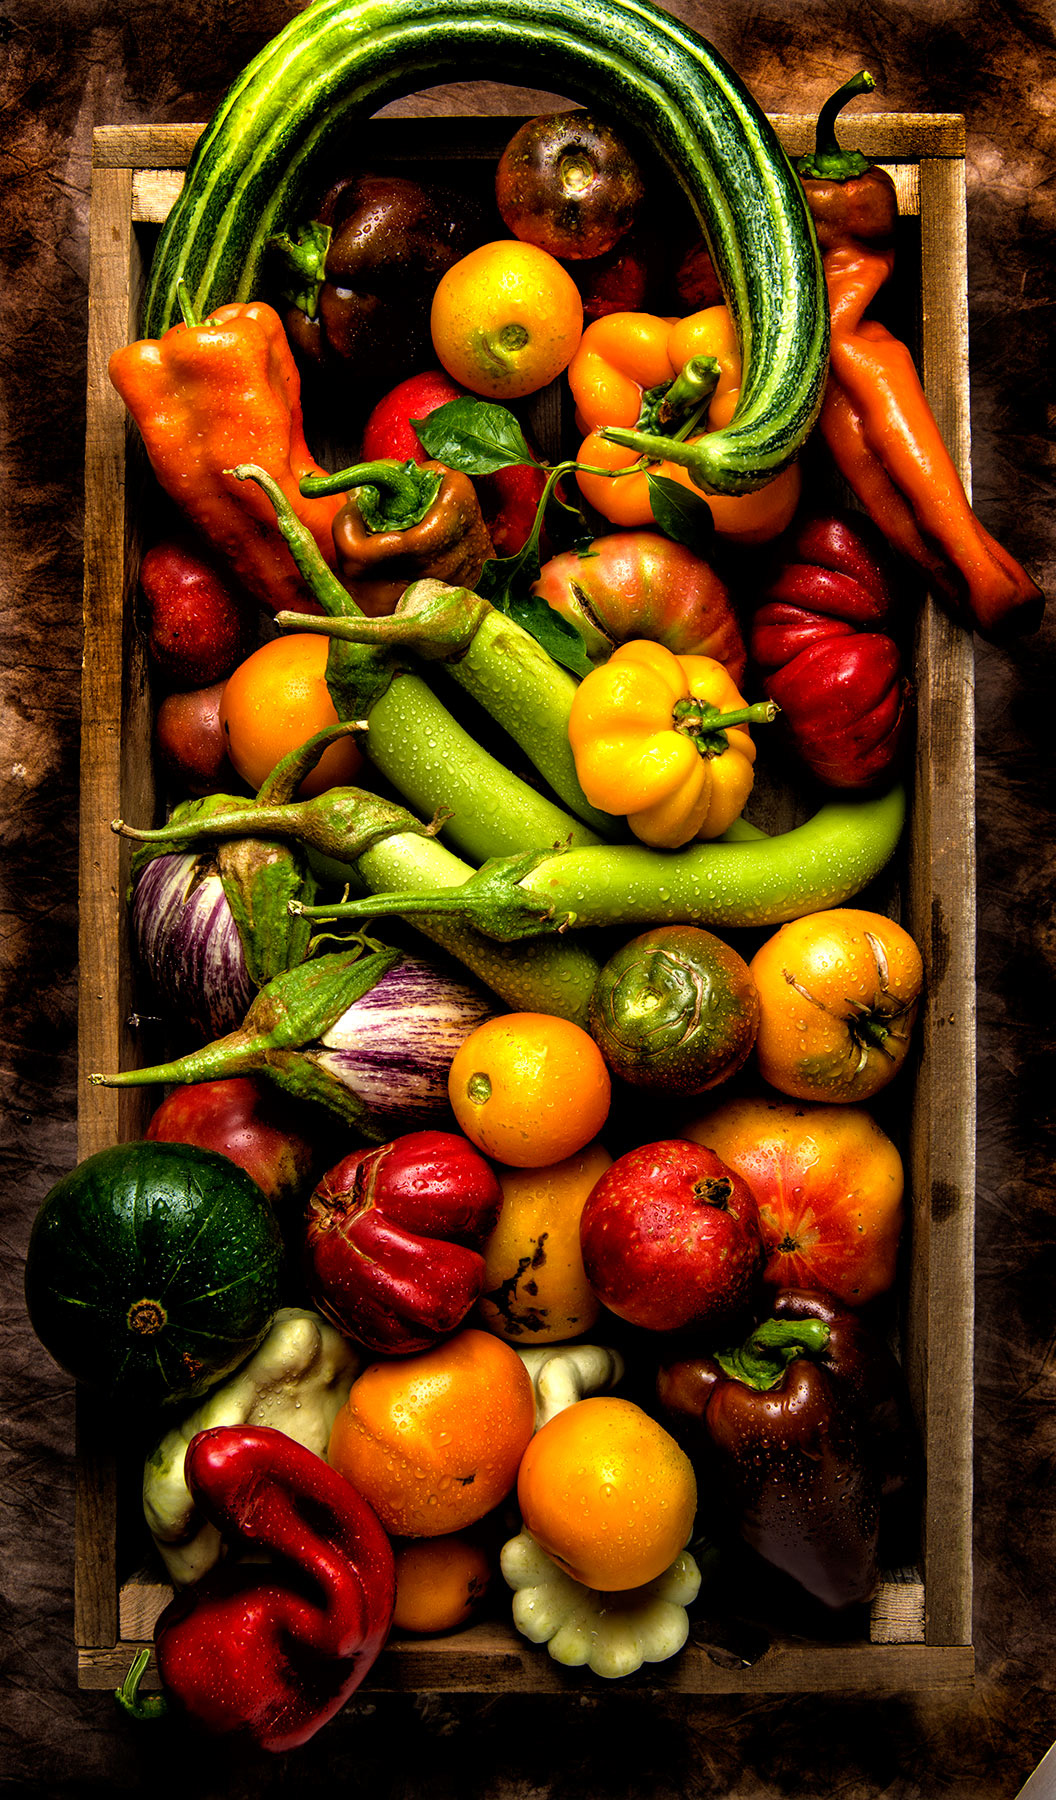 Veggies-Carl-Kravats-Food-Photography